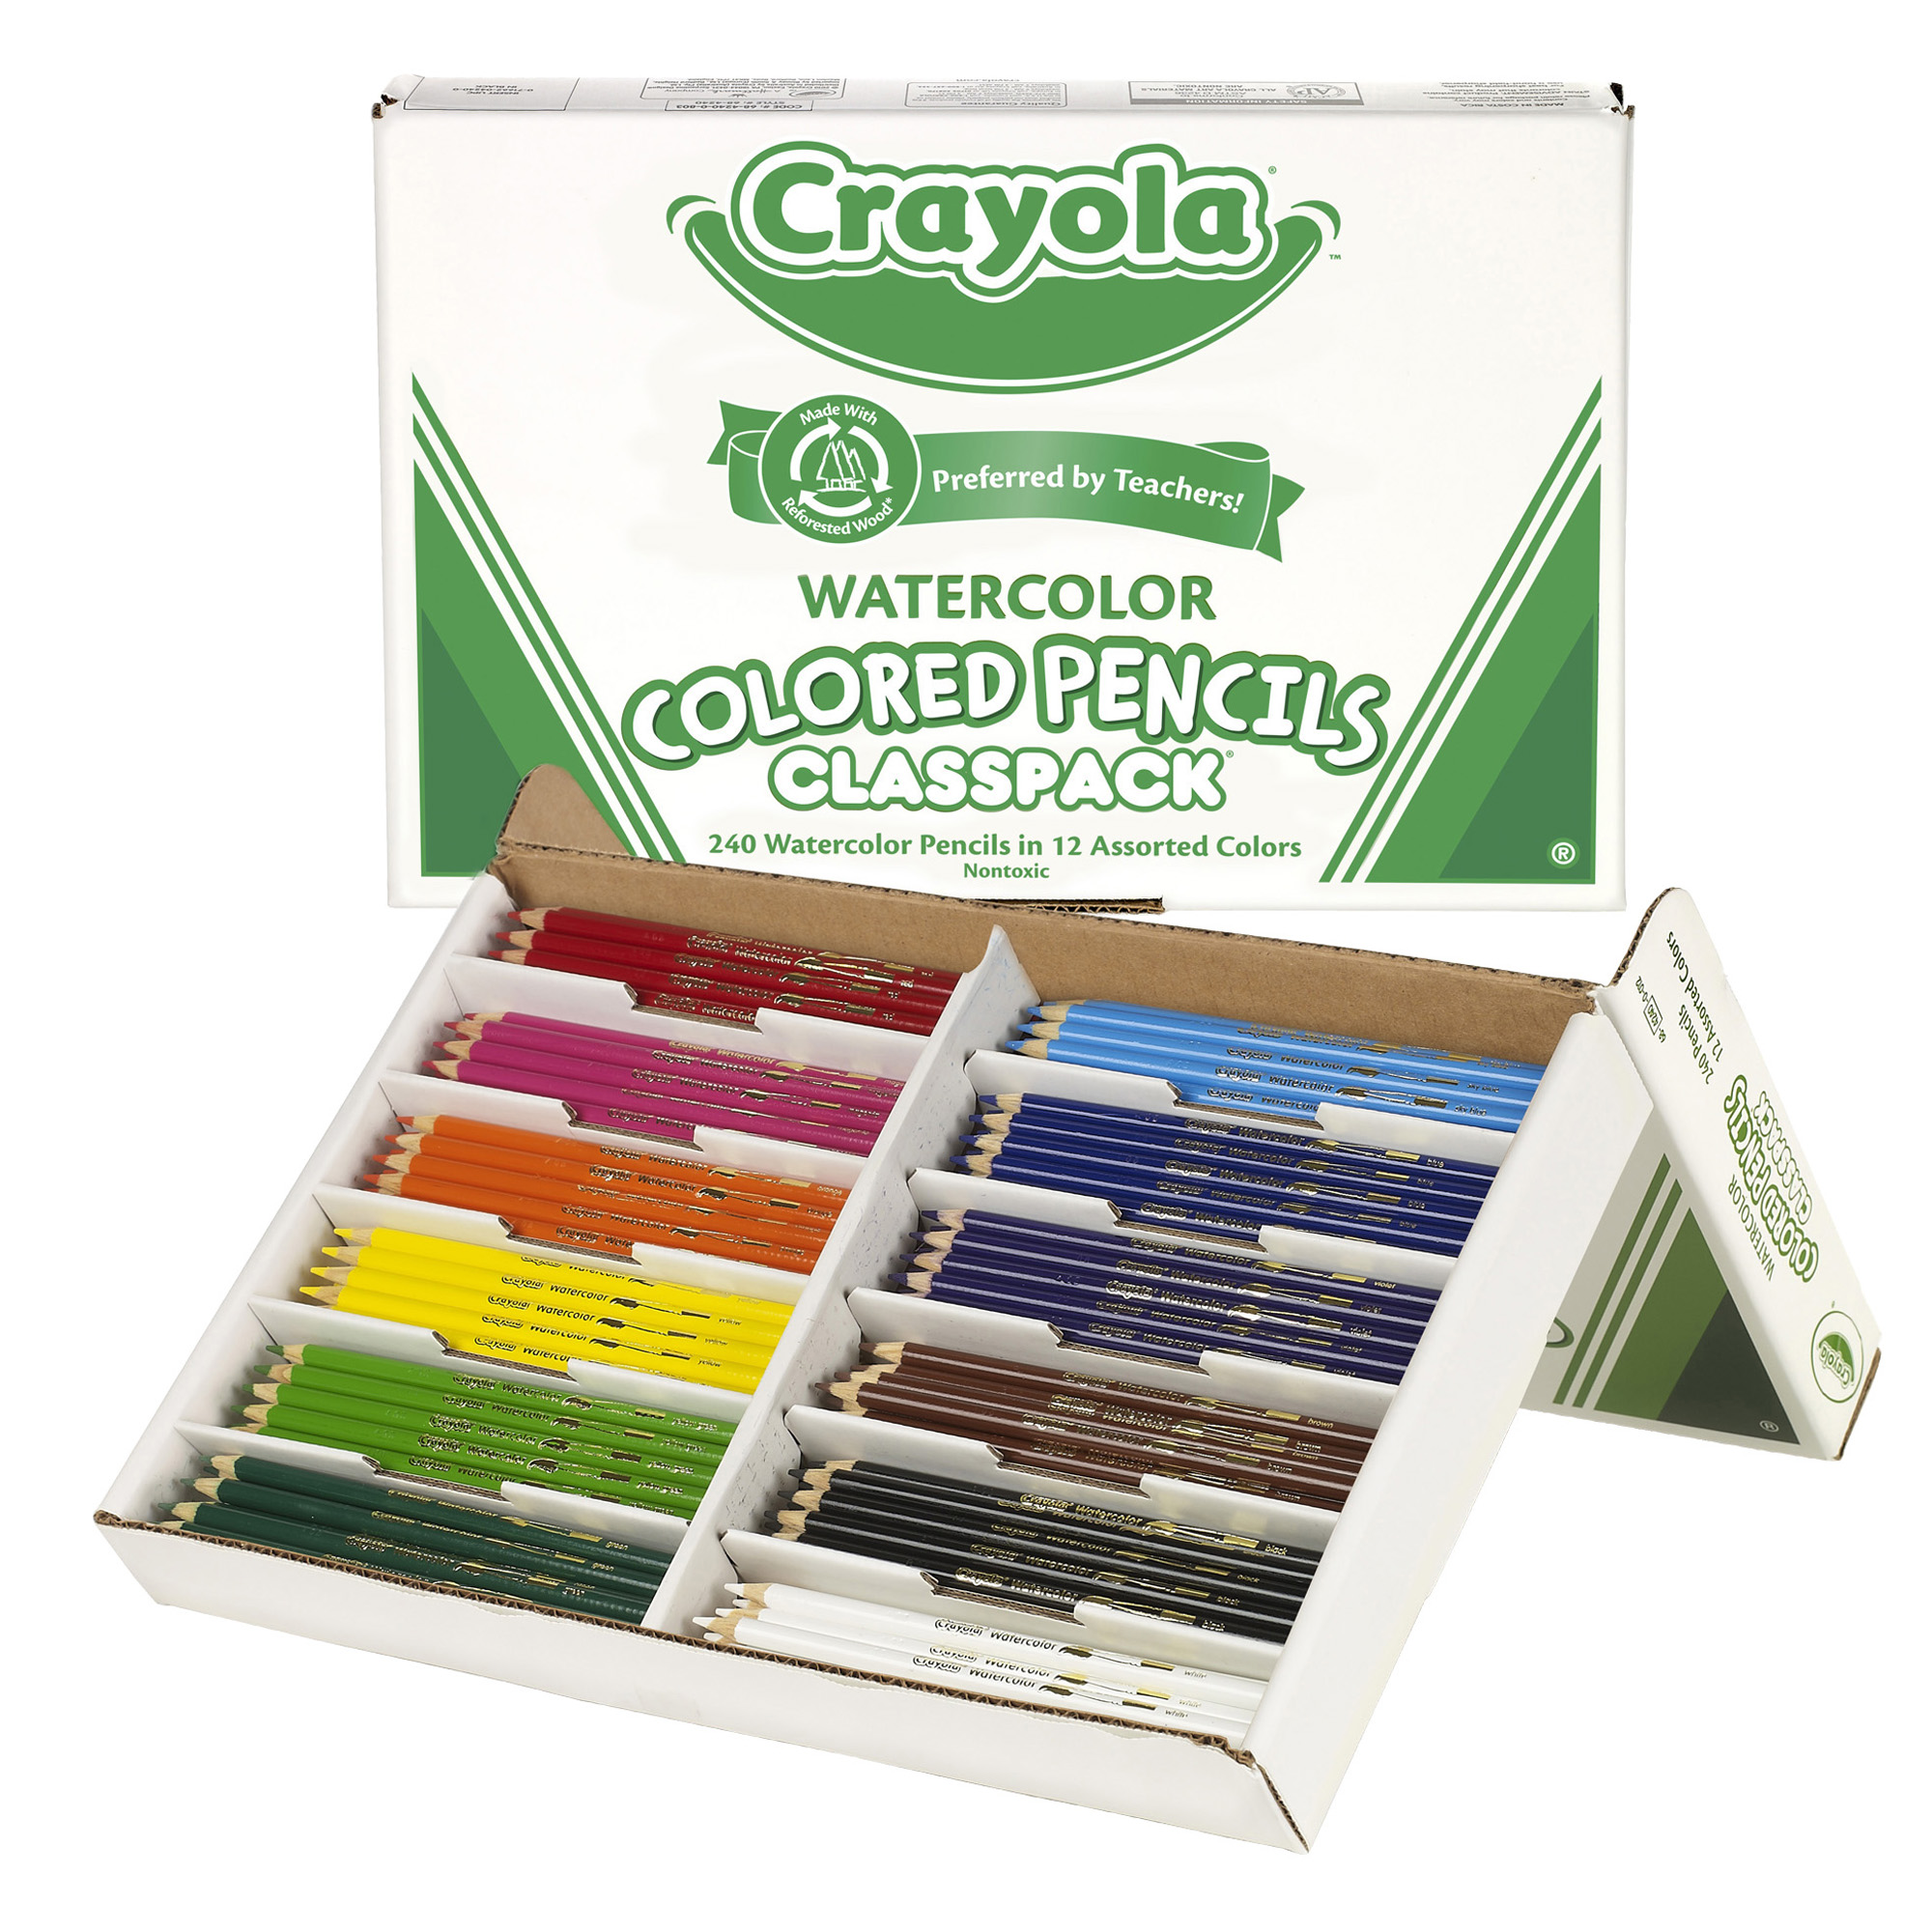 Crayola® Watercolor Colored Pencil Classpack, 12 Colors, 240 Count